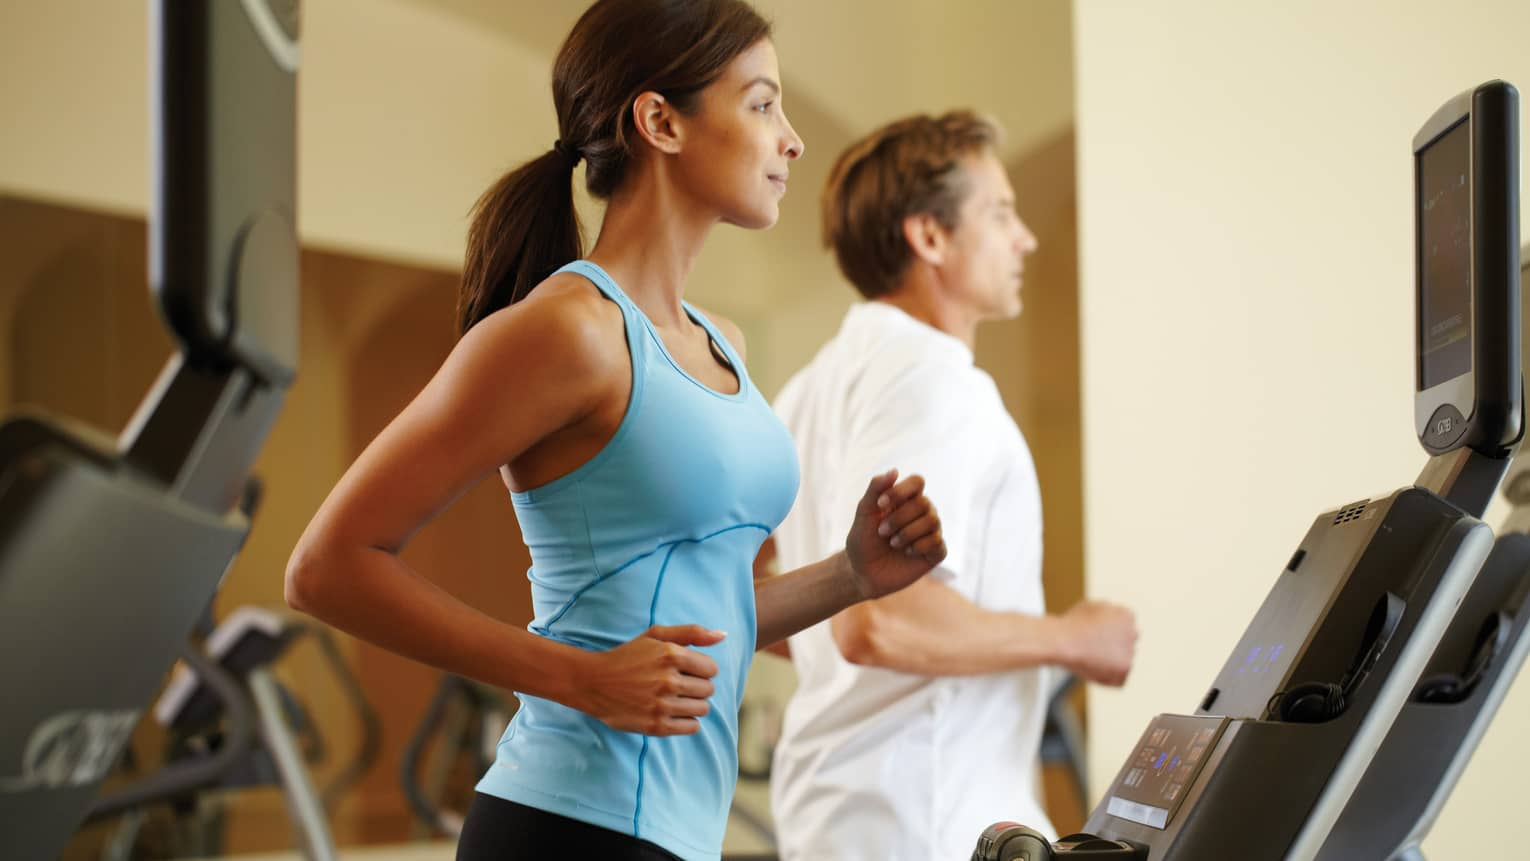 Woman in blue sleeveless shirt runs on treadmill beside man in T-shirt